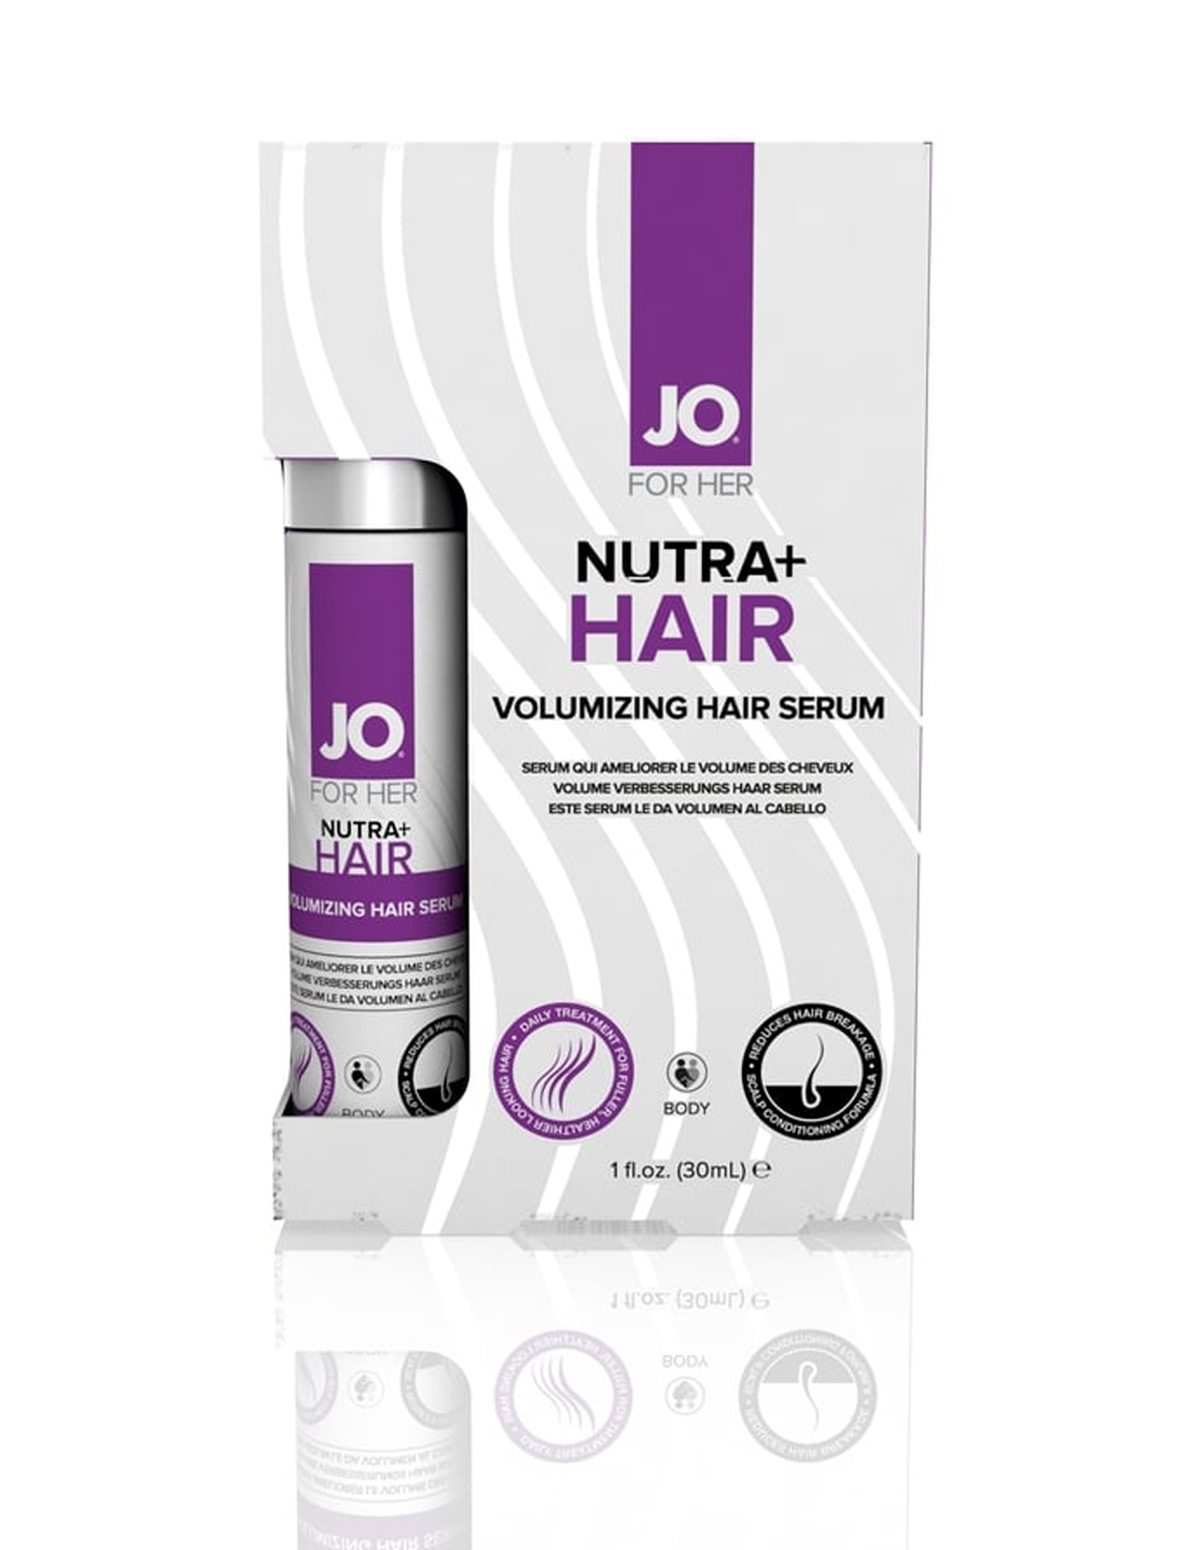 Jo Nutra+ Hair Volumizing Serum For Her